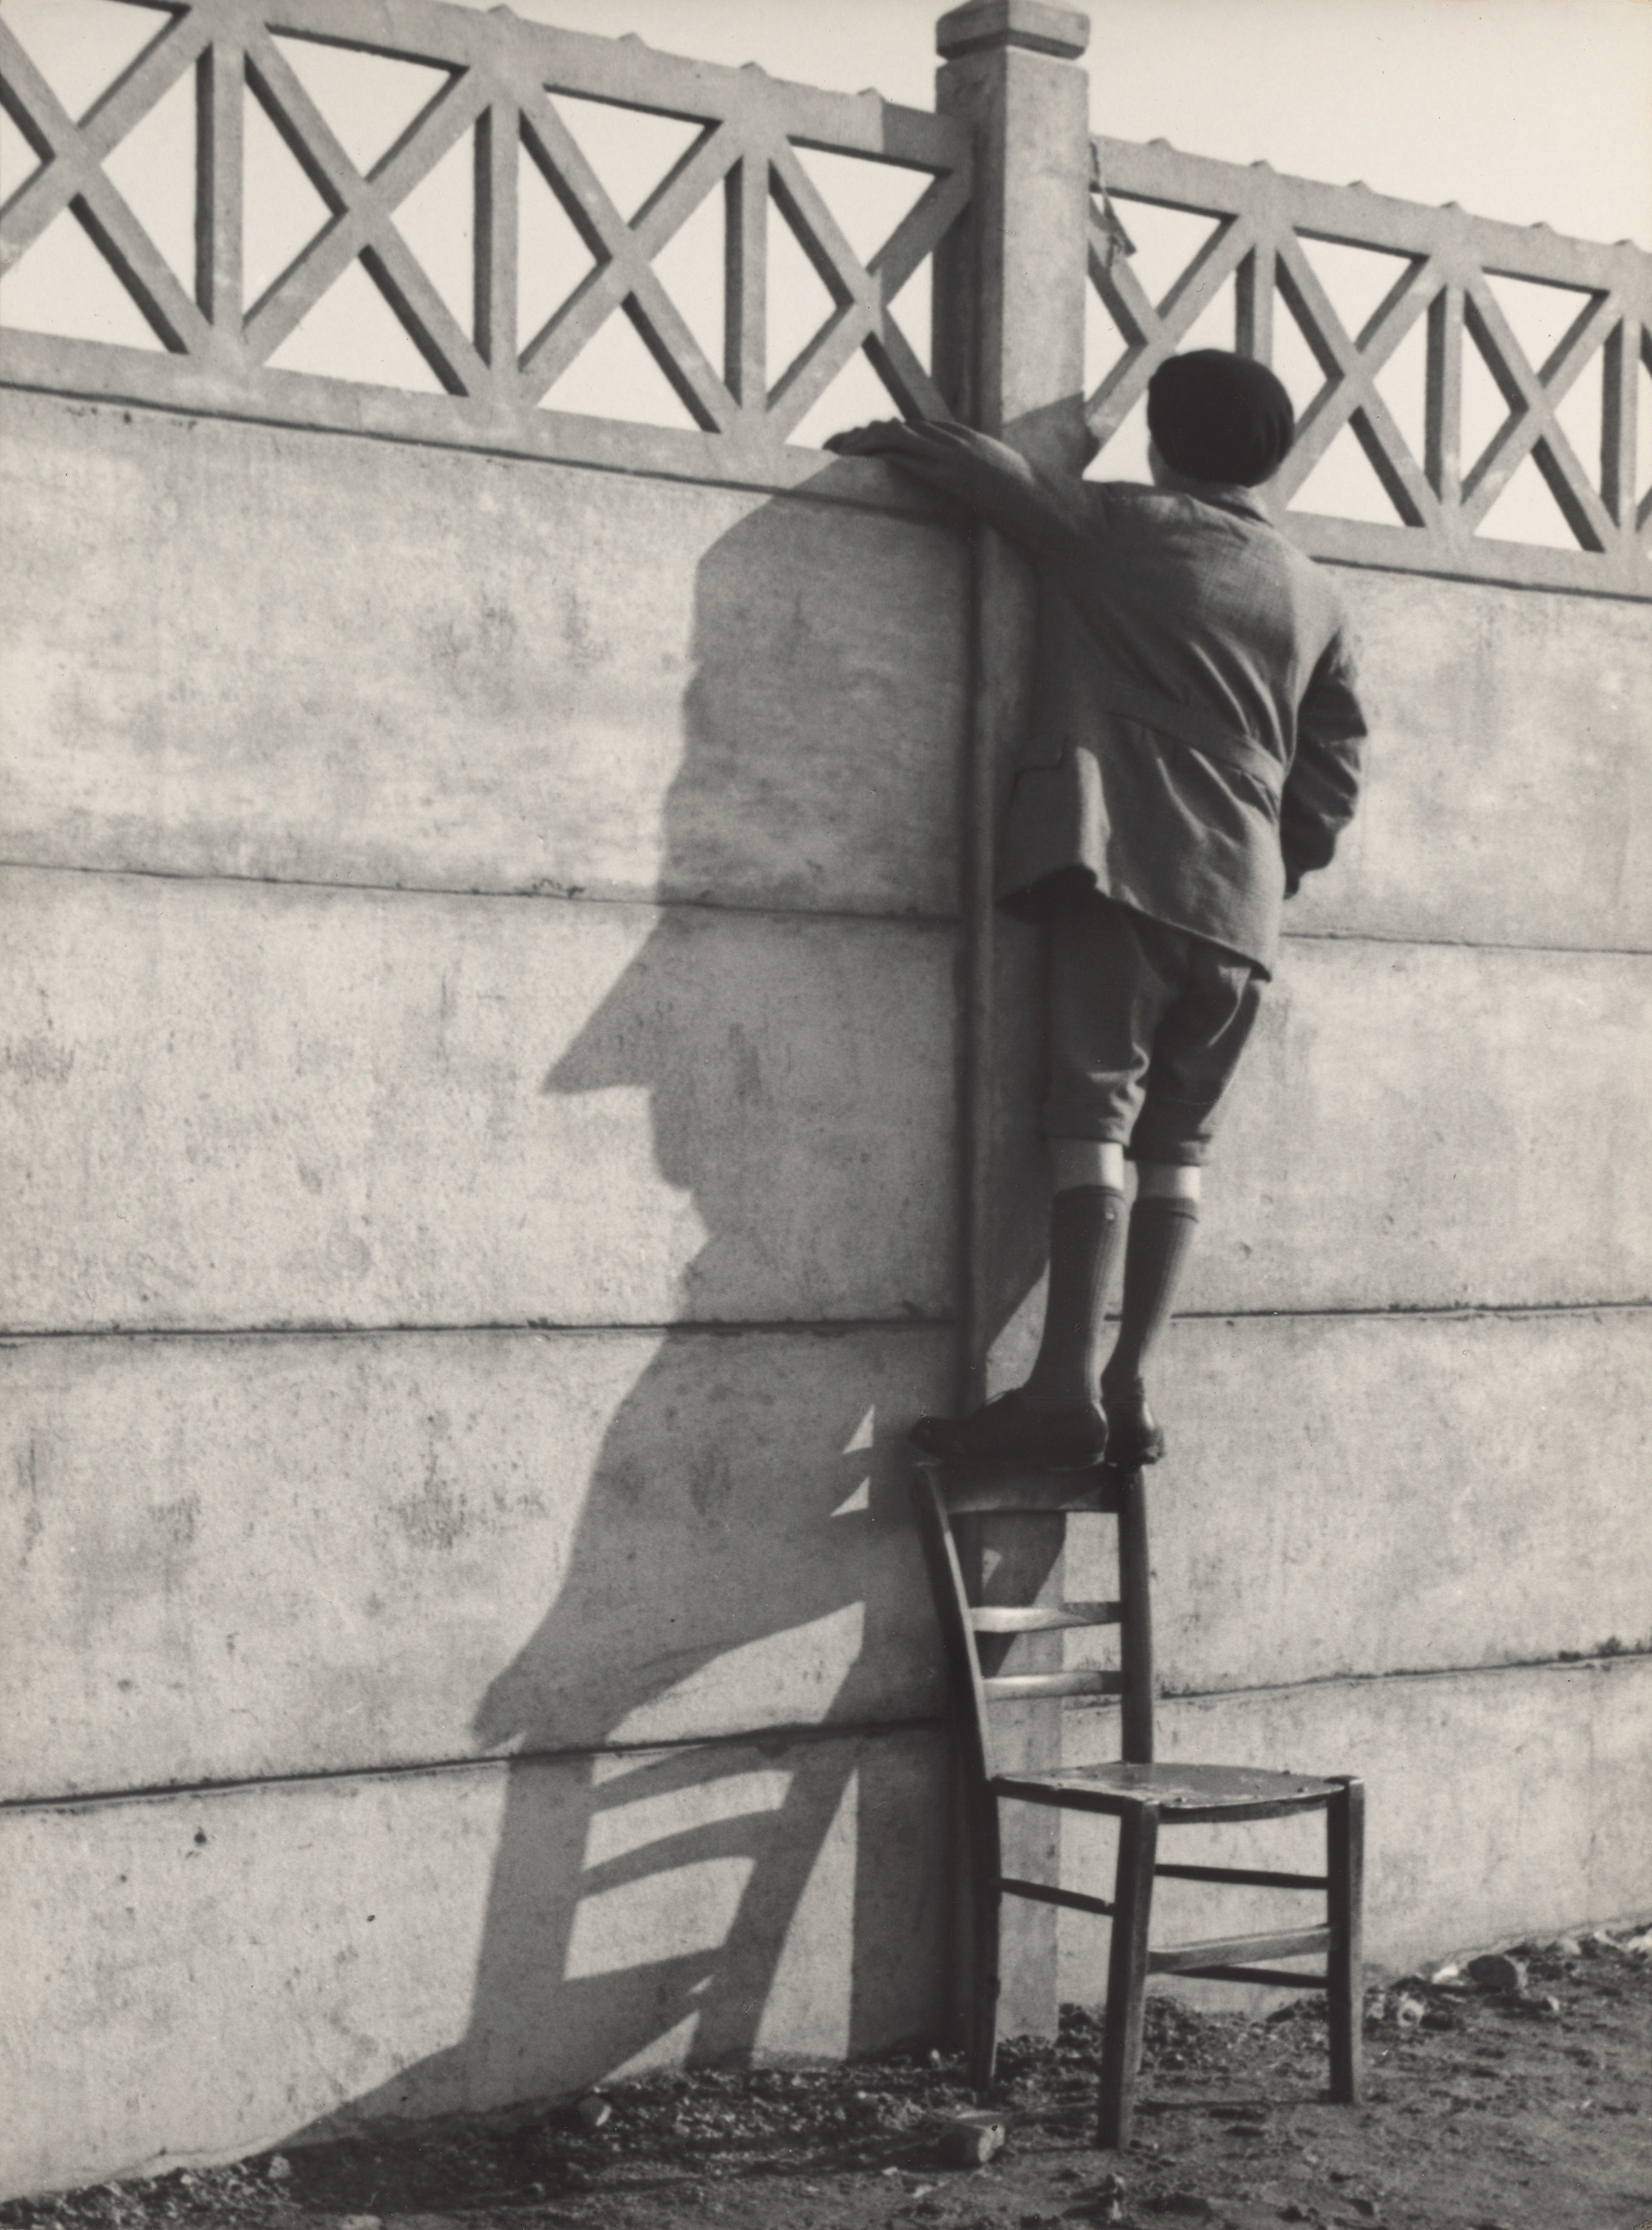 A boy stands on the back of a chair to get a vantage point over a large stone wall